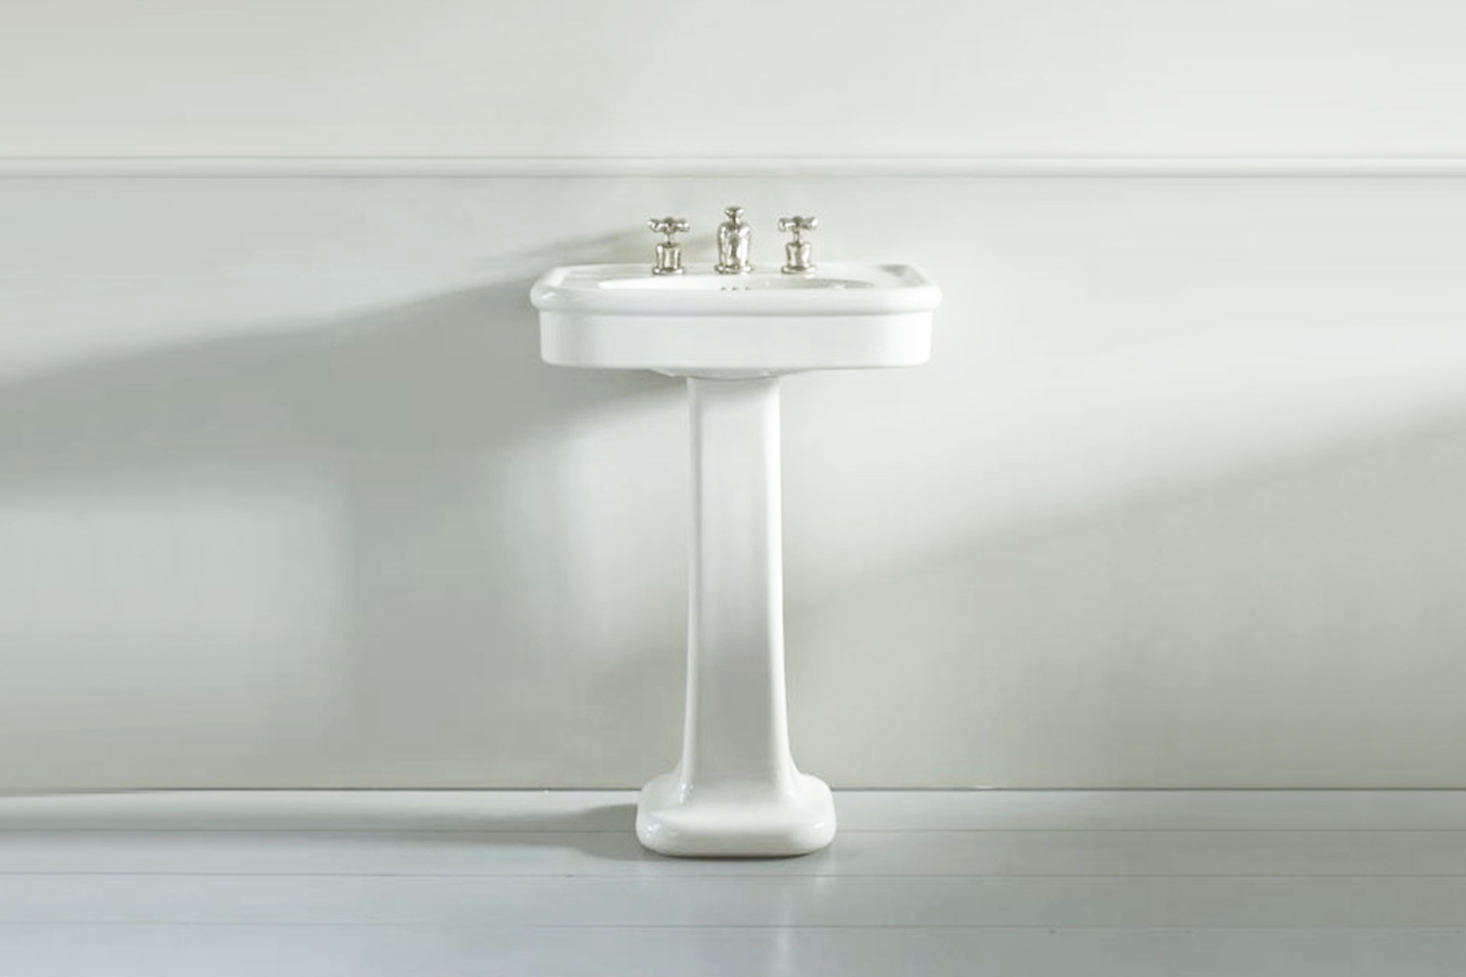 For the baths at The Rose, the designers sourced and restored colorful vintage sanitary ware like the mint green pedestal sink and toilet. For a similar off-the-shelf option, The Water Monopoly in the UK makes the Rockwell Basin on a Pedestal in white and three colors, including Willow, a sage-mint green; £9 at the Water Monopoly. For more on the company, see our postRetro Bath Fixtures in Retro Colors from the Water Monopoly.